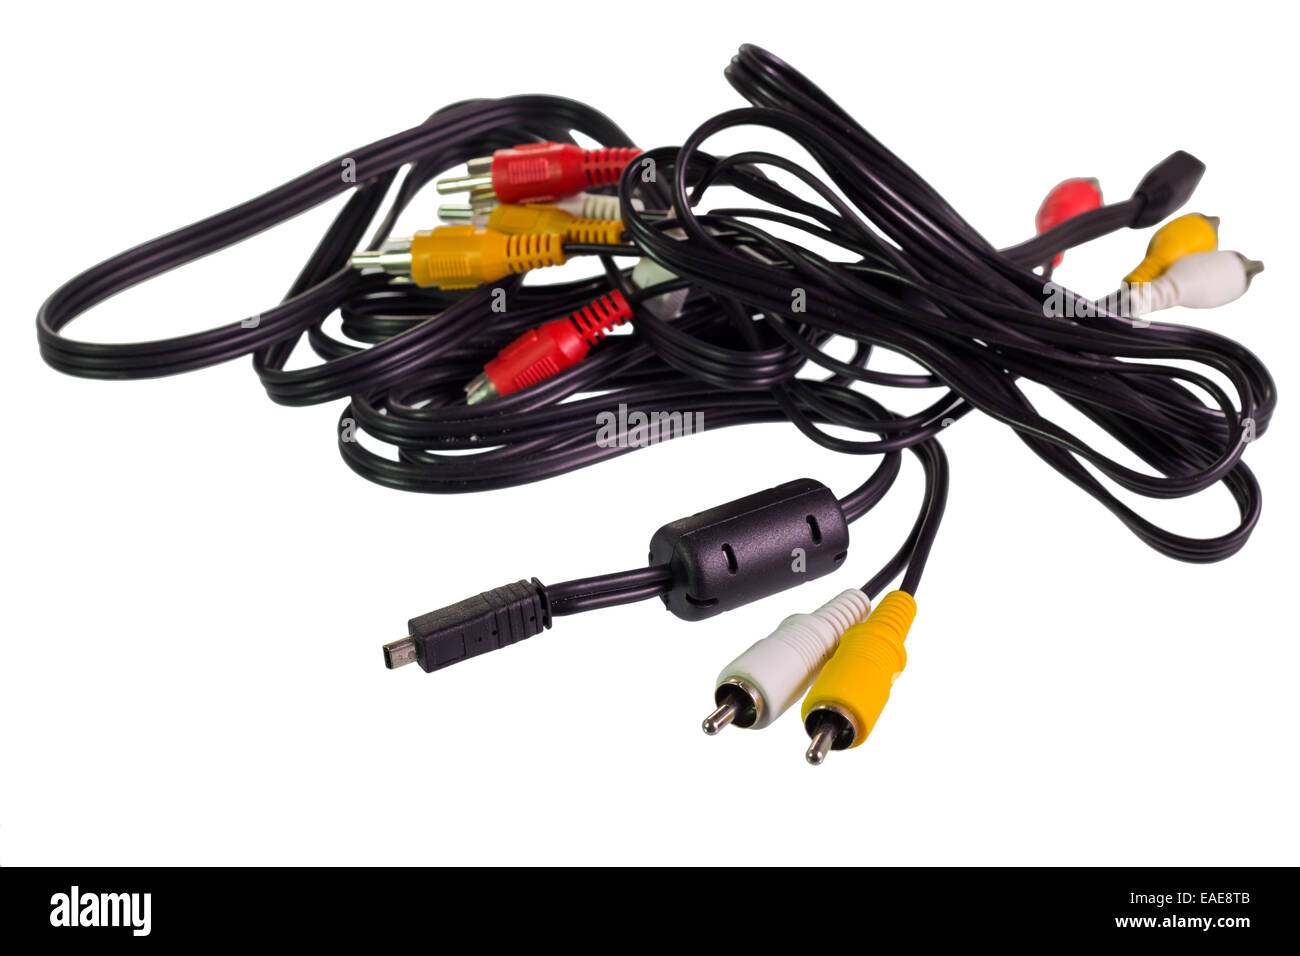 hight resolution of stereo speaker wire and cable to mini jack mono plug on isolated white background